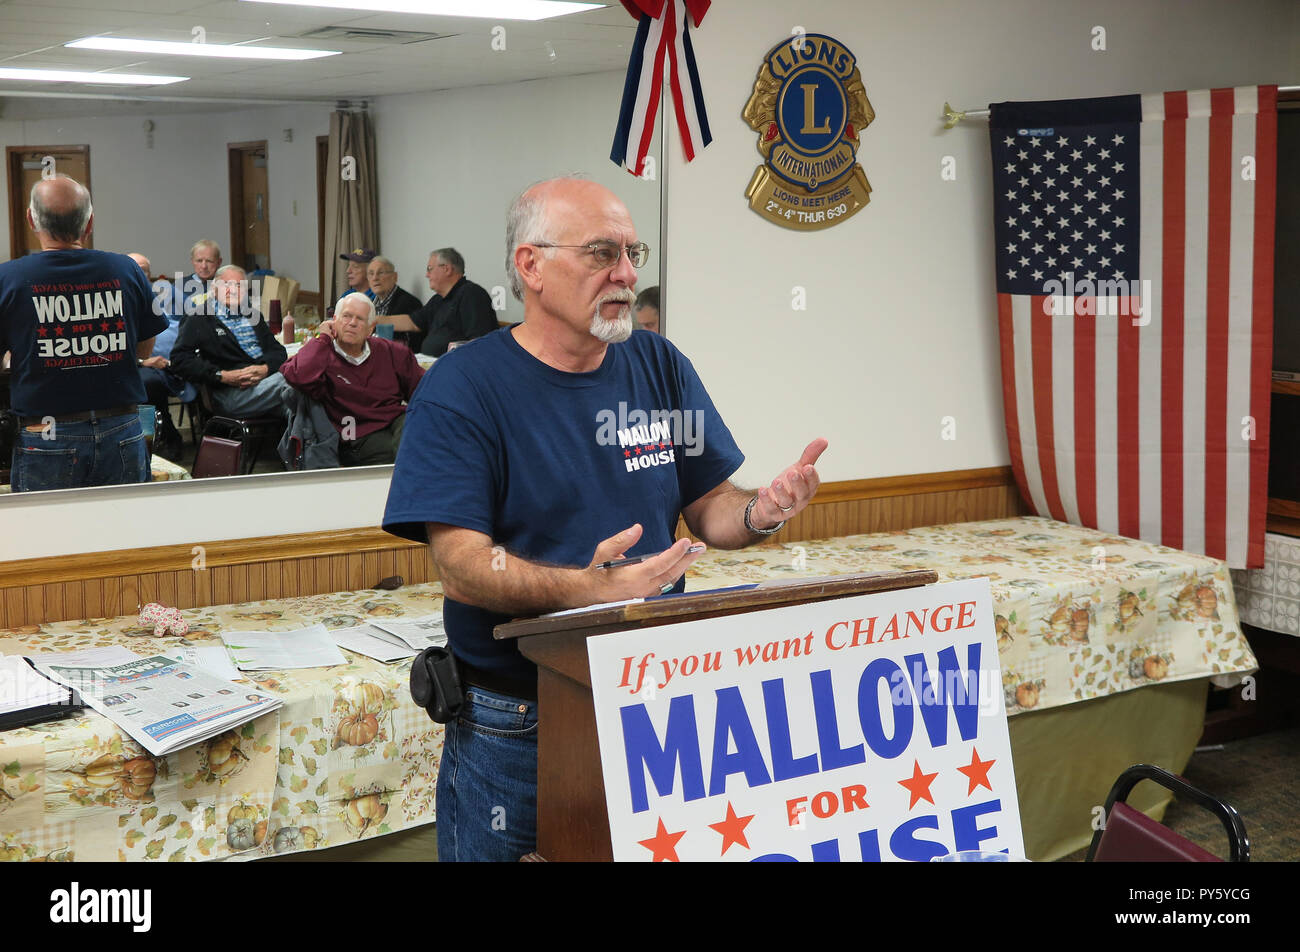 Fairmont, USA. 24th Oct, 2018. Phil Mallow, Republican candidate for the West Virginia House of Representatives, speaks to supporters over lunch at Mom's Place. The 61-year-old wants to move into the House of Representatives of West Virginia for Trump's Republican. (to dpa 'One country, two worlds - How Trump splits America' on 26.10.2018) Credit: Can Merey/dpa/Alamy Live News - Stock Image